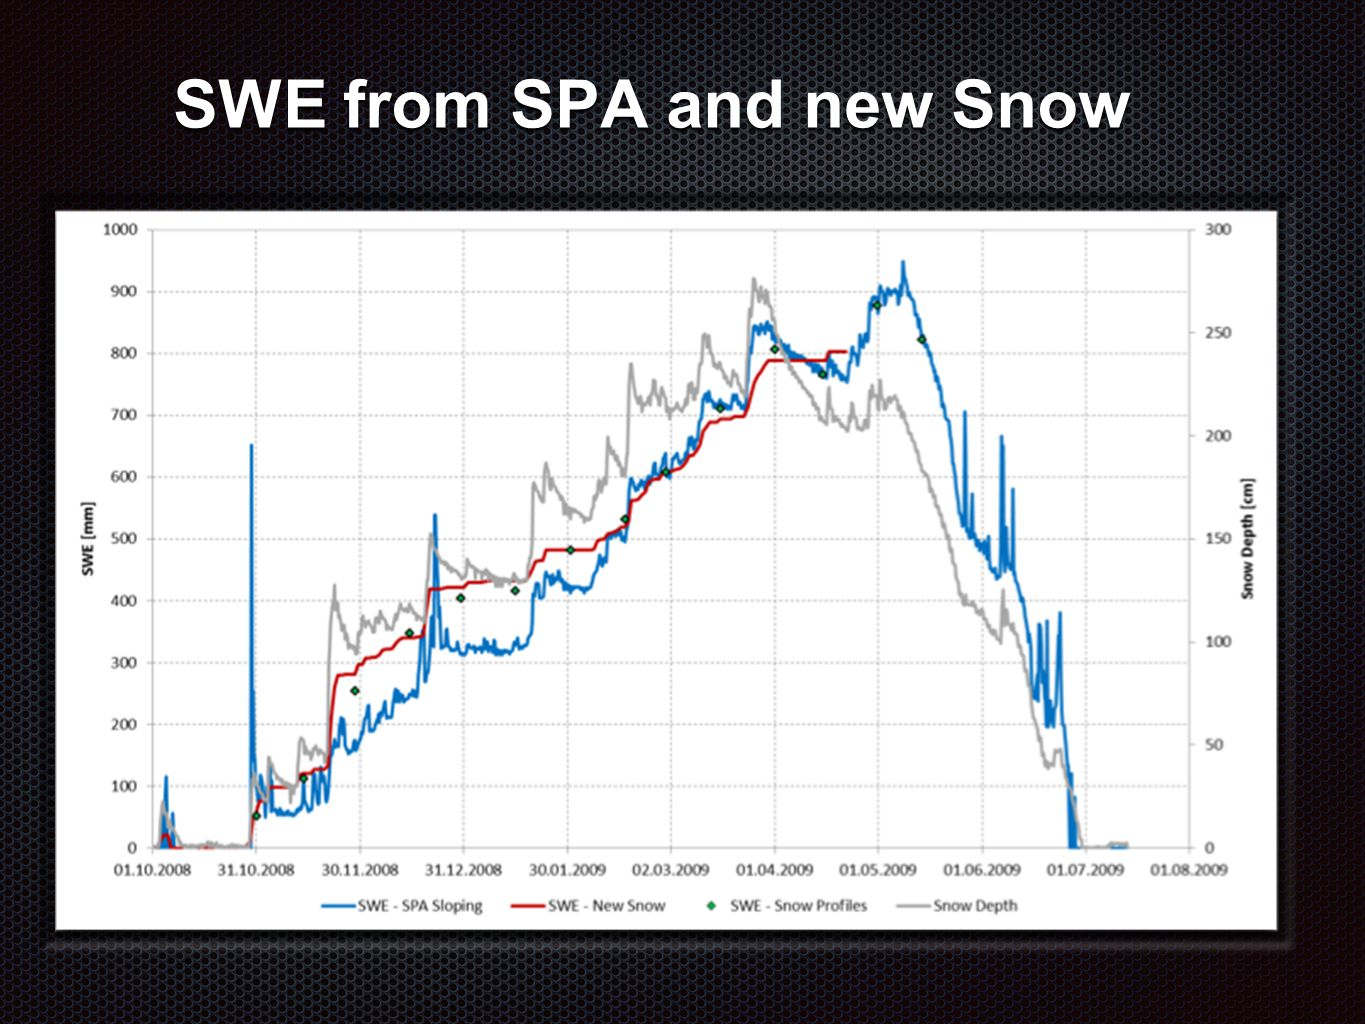 SWE from SPA and new Snow